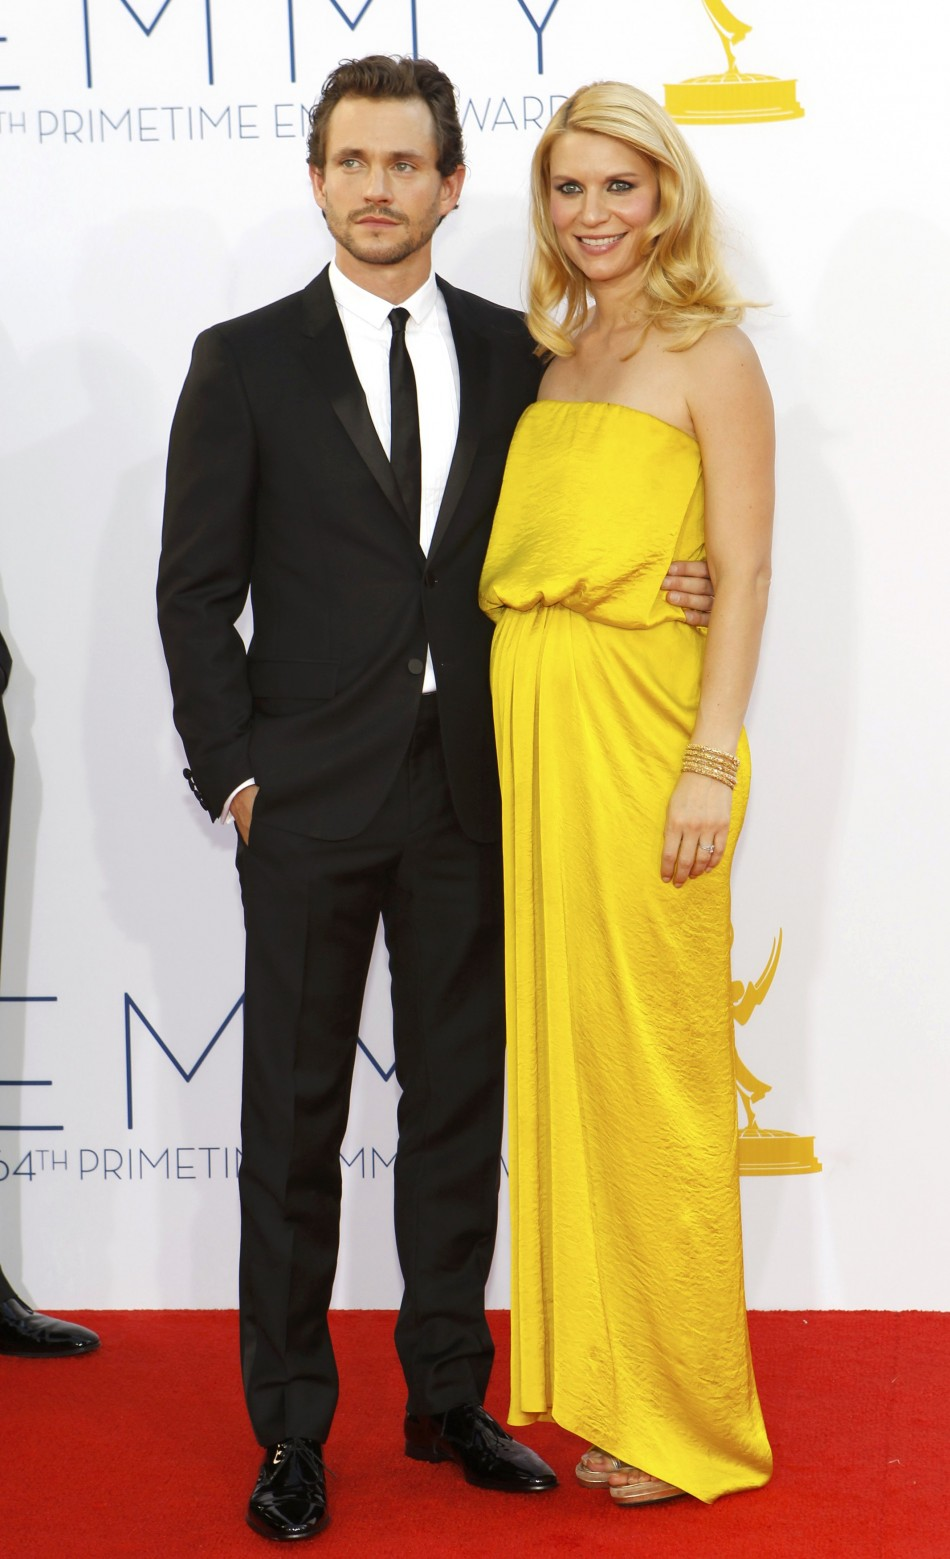 Actress Claire Danes of the drama series Homeland and her husband actor Hugh Dancey arrive at the 64th Primetime Emmy Awards in Los Angeles